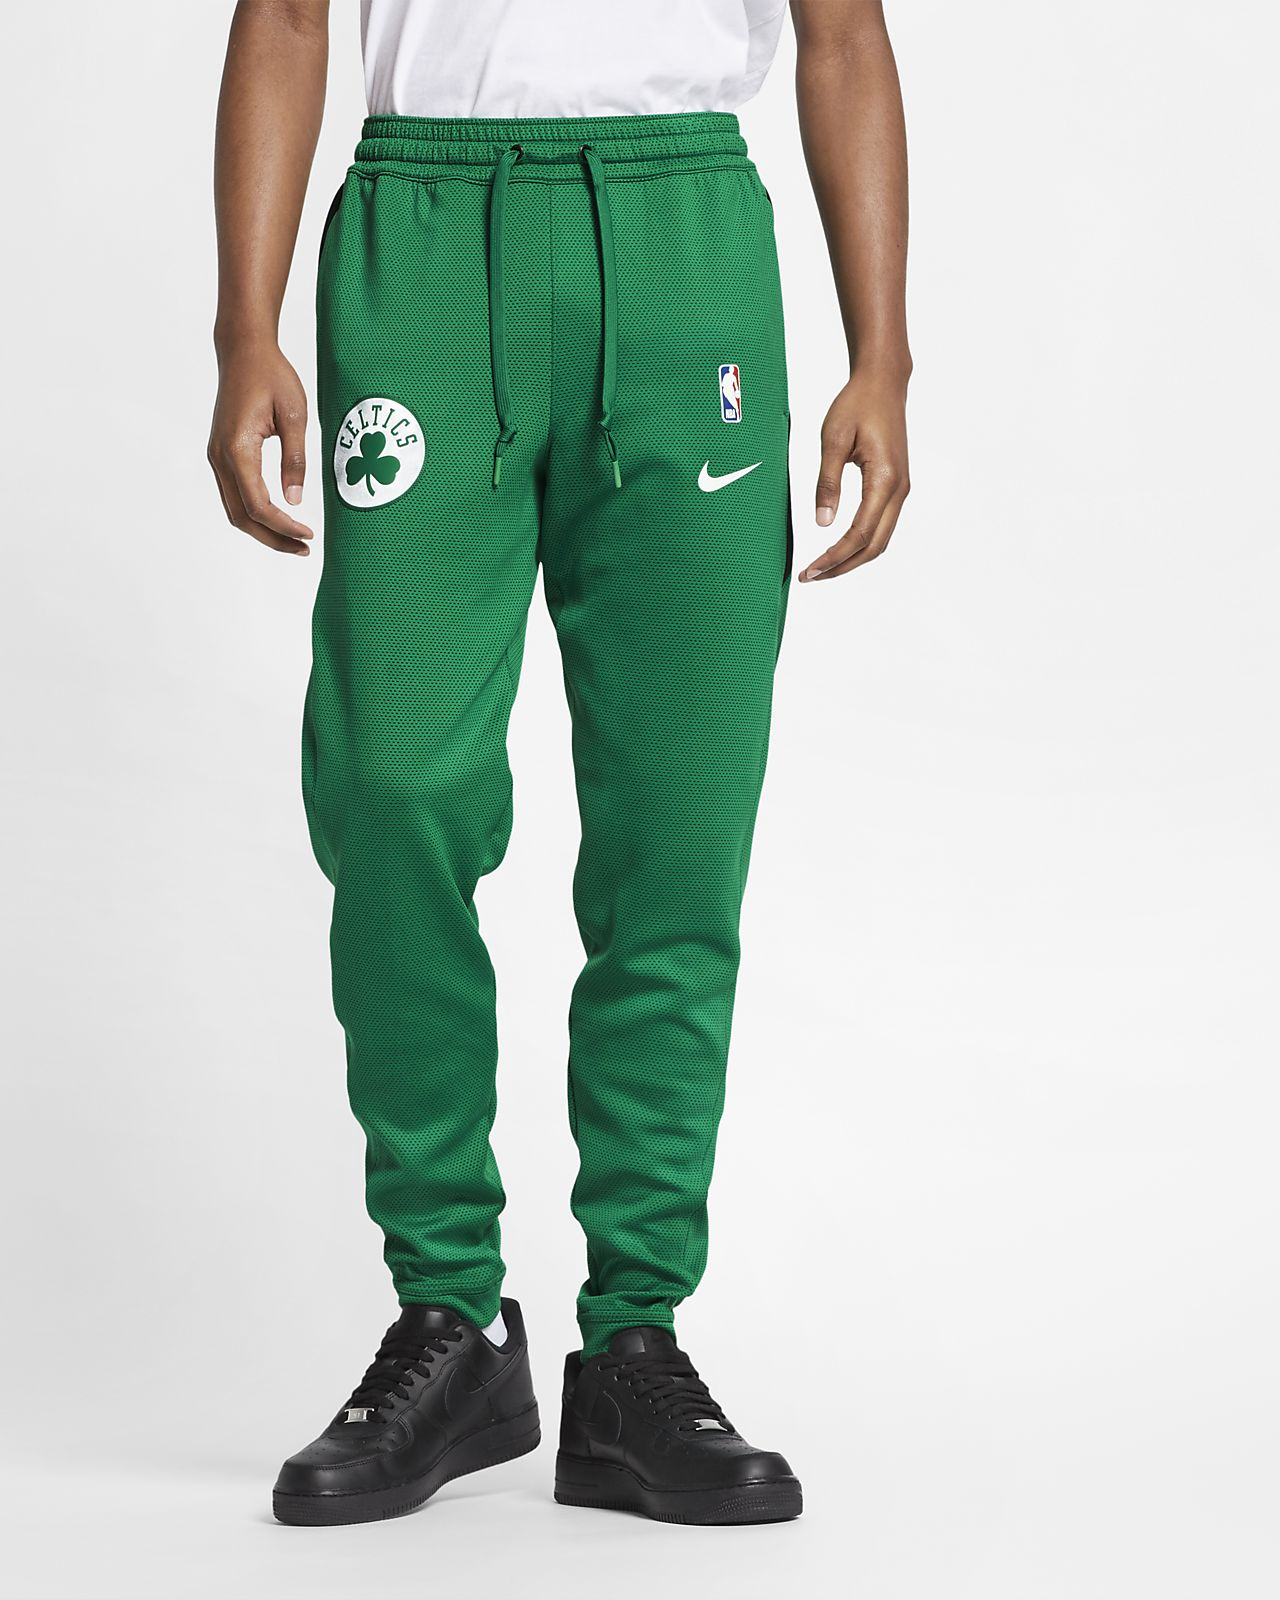 Boston Celtics Nike Therma Flex Showtime Pantalons de l'NBA - Home